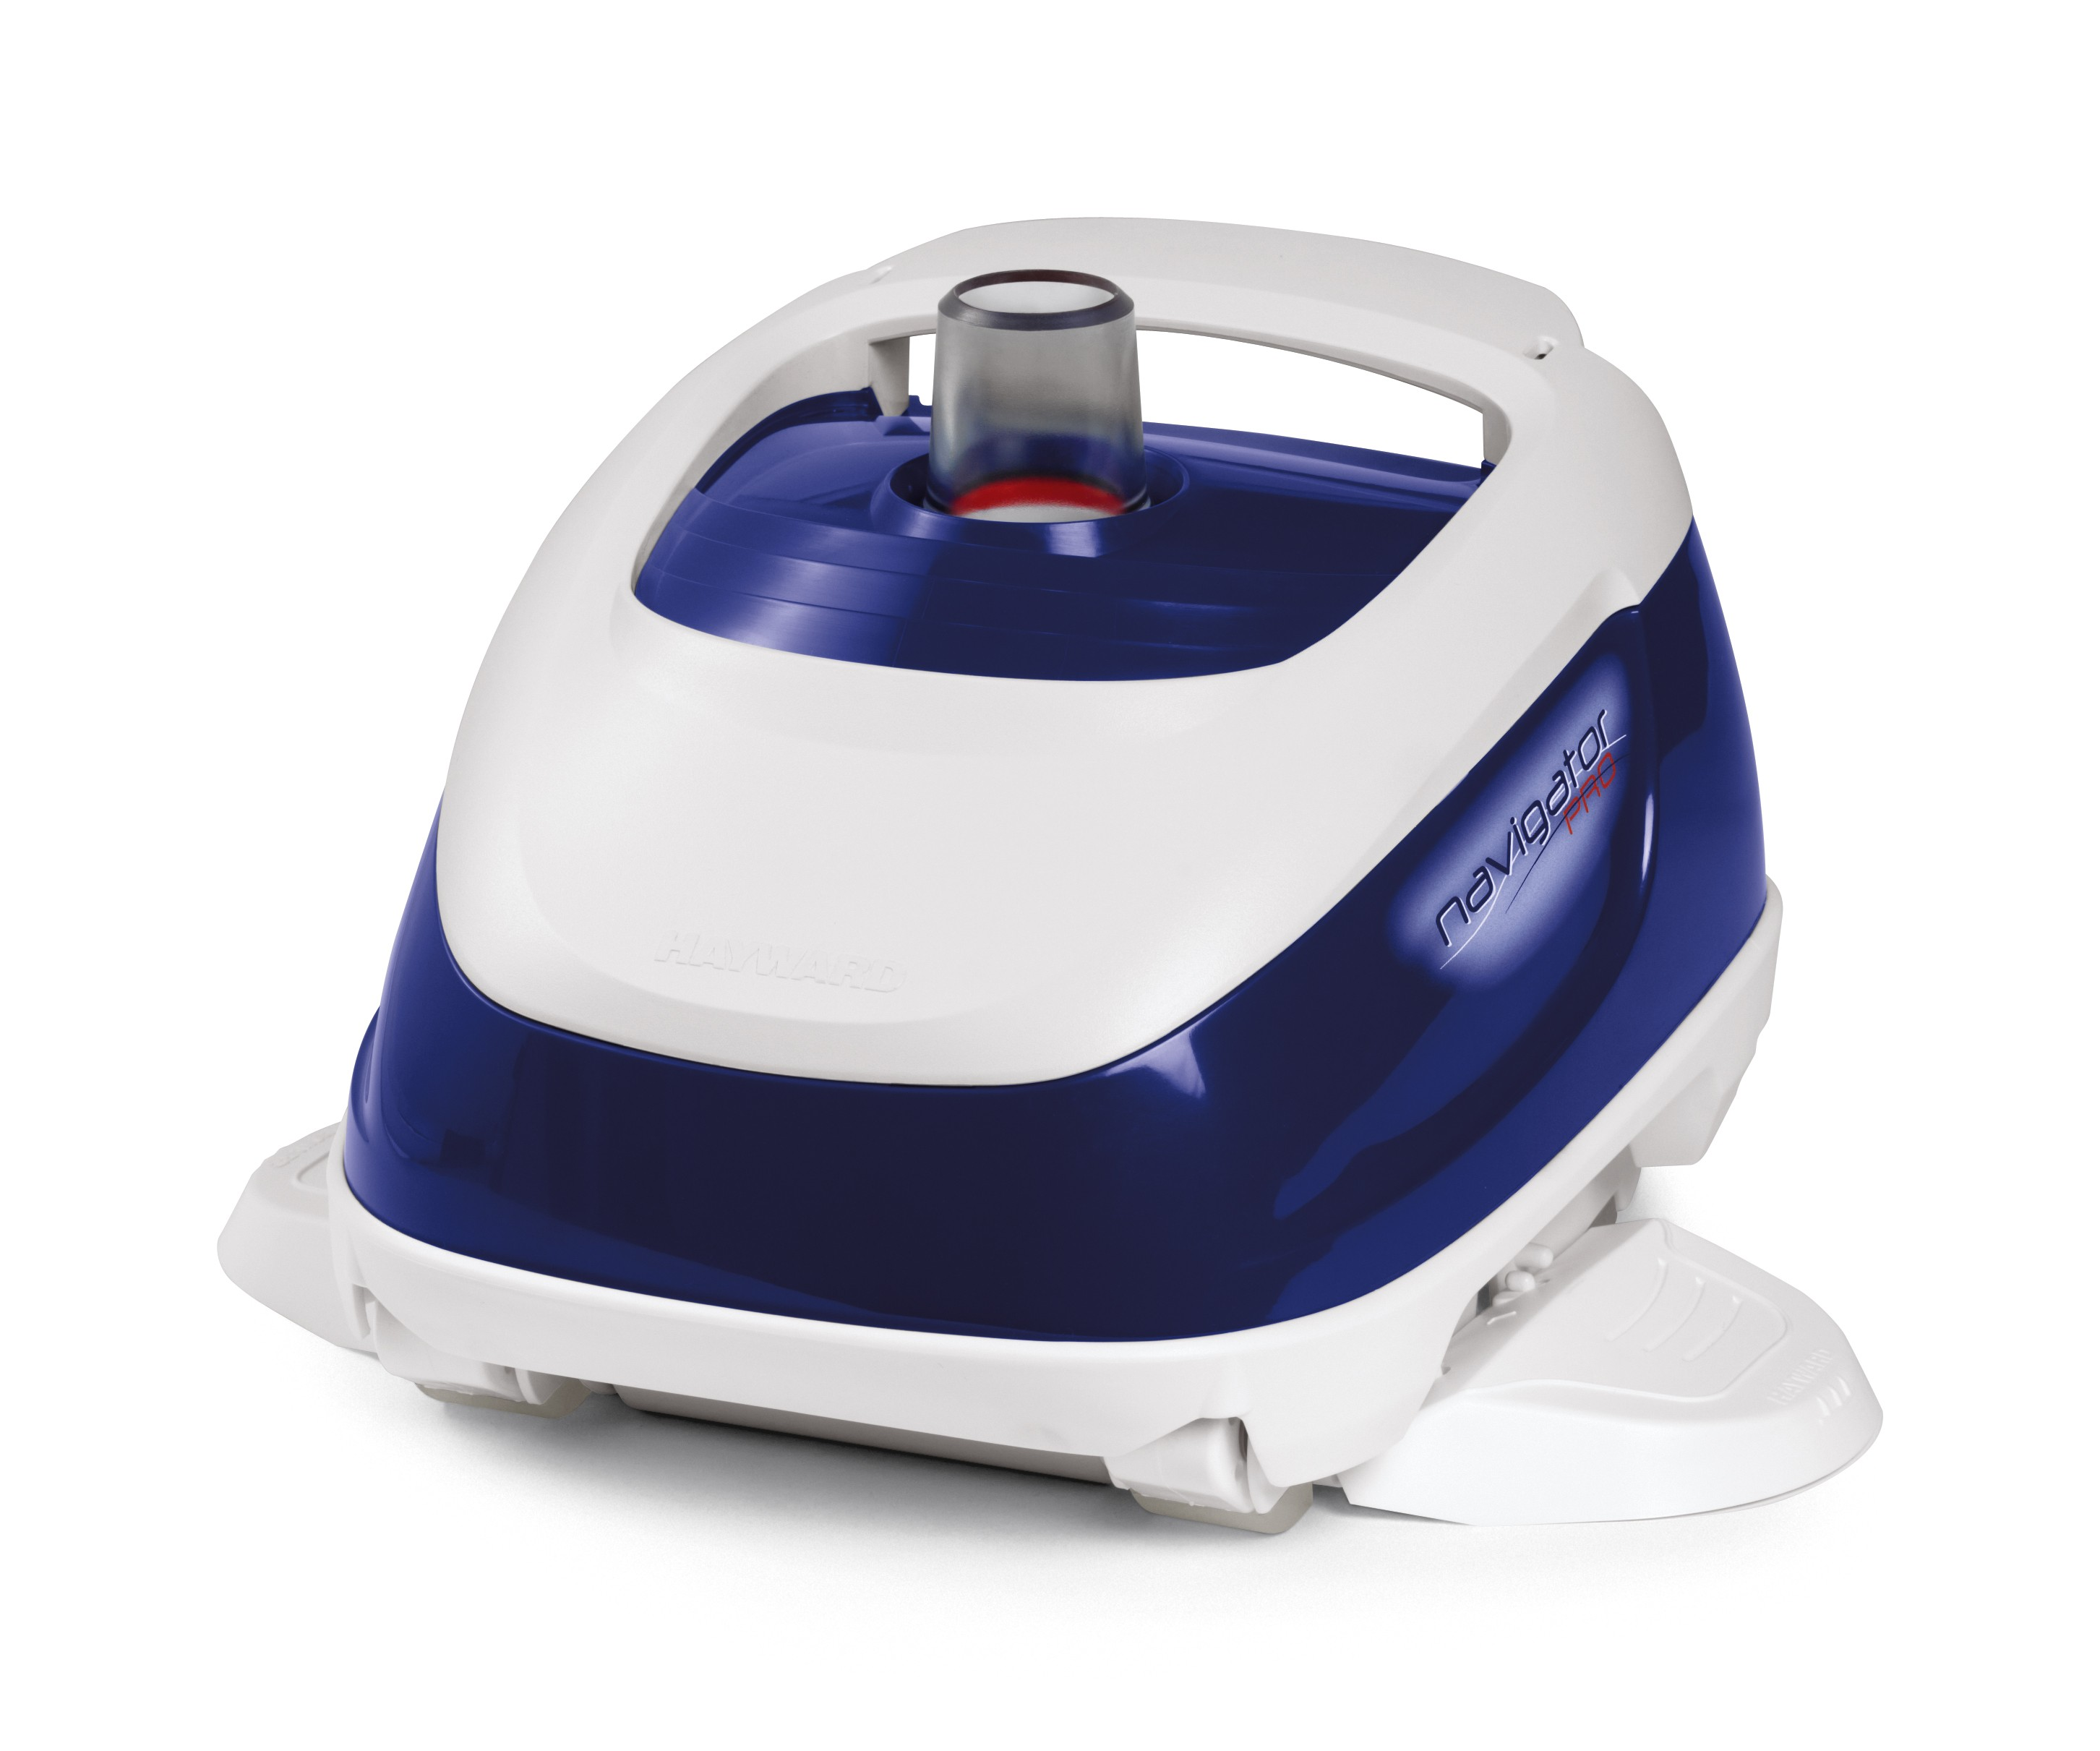 Hayward Navigator Pro Suction Side Automatic Pool Cleaner (925ADC)